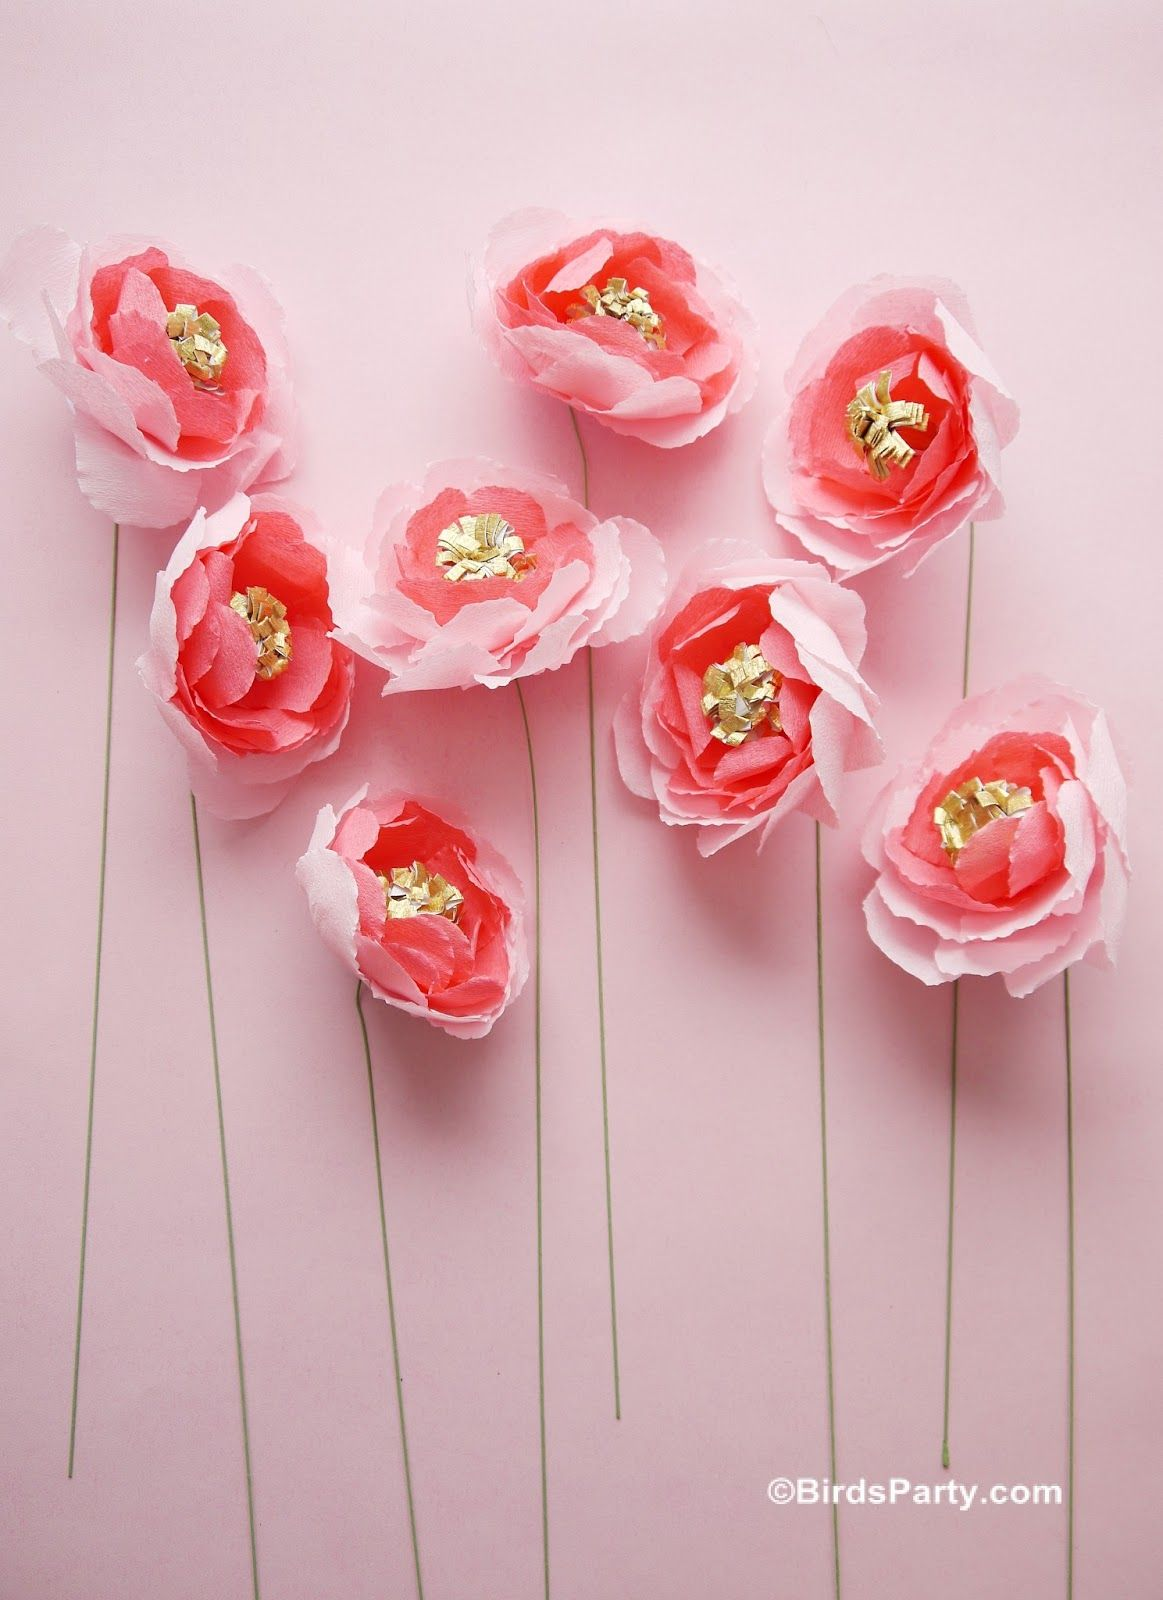 Diy crepe paper flowers bouquet crepe paper flower bouquets and party printables party ideas party planning party crafts party recipes blog birds party mothers day easy craft crepe paper flo mightylinksfo